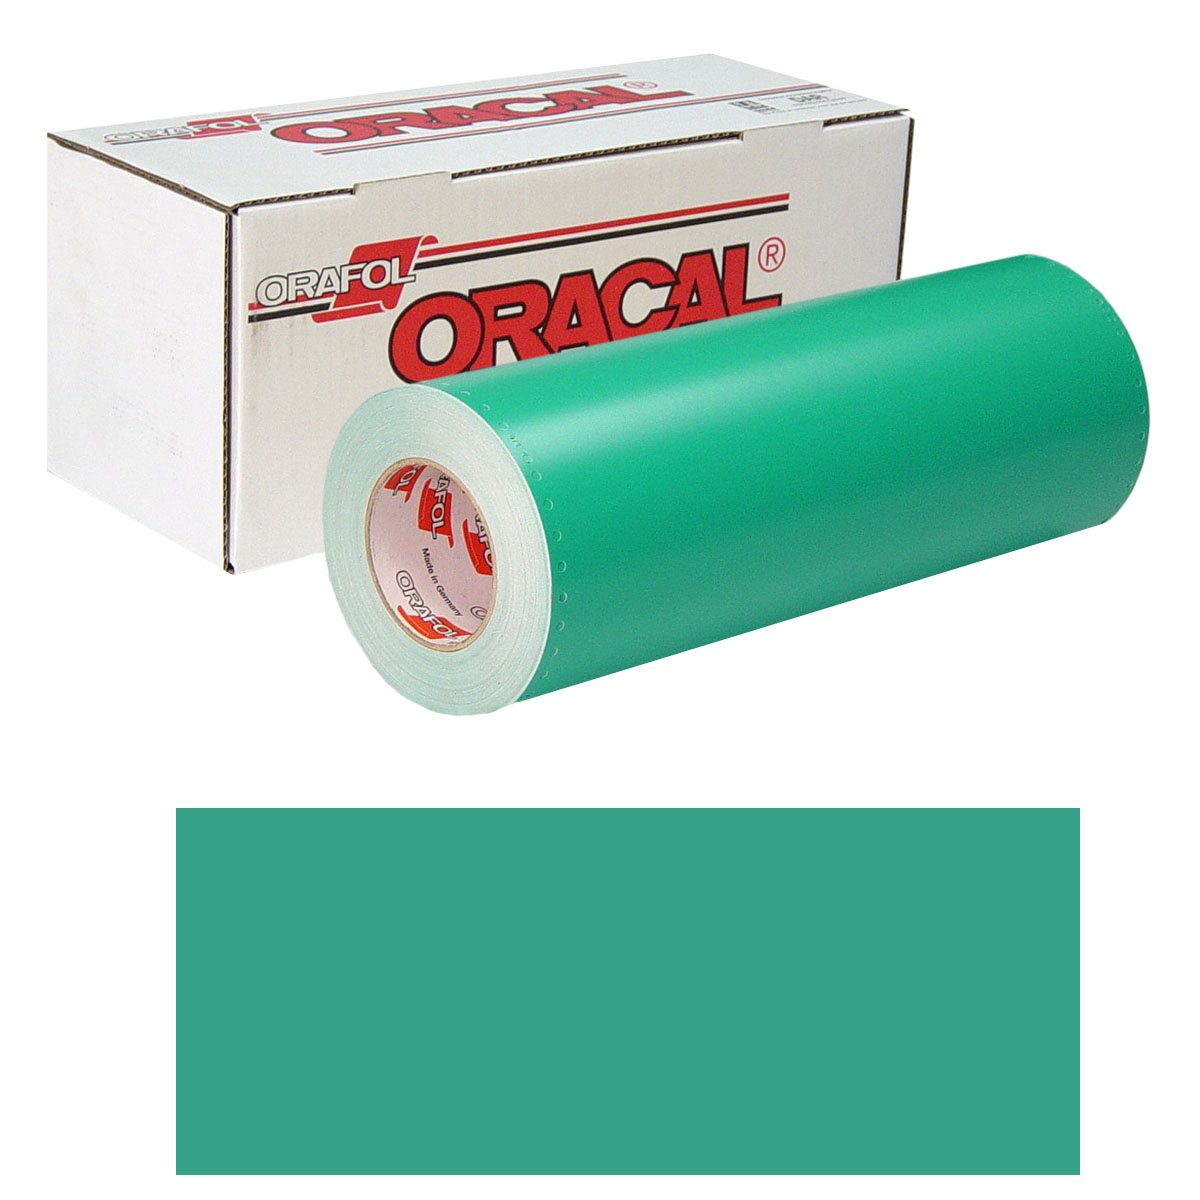 ORACAL 8500 15in X 10yd 009 Middle Green